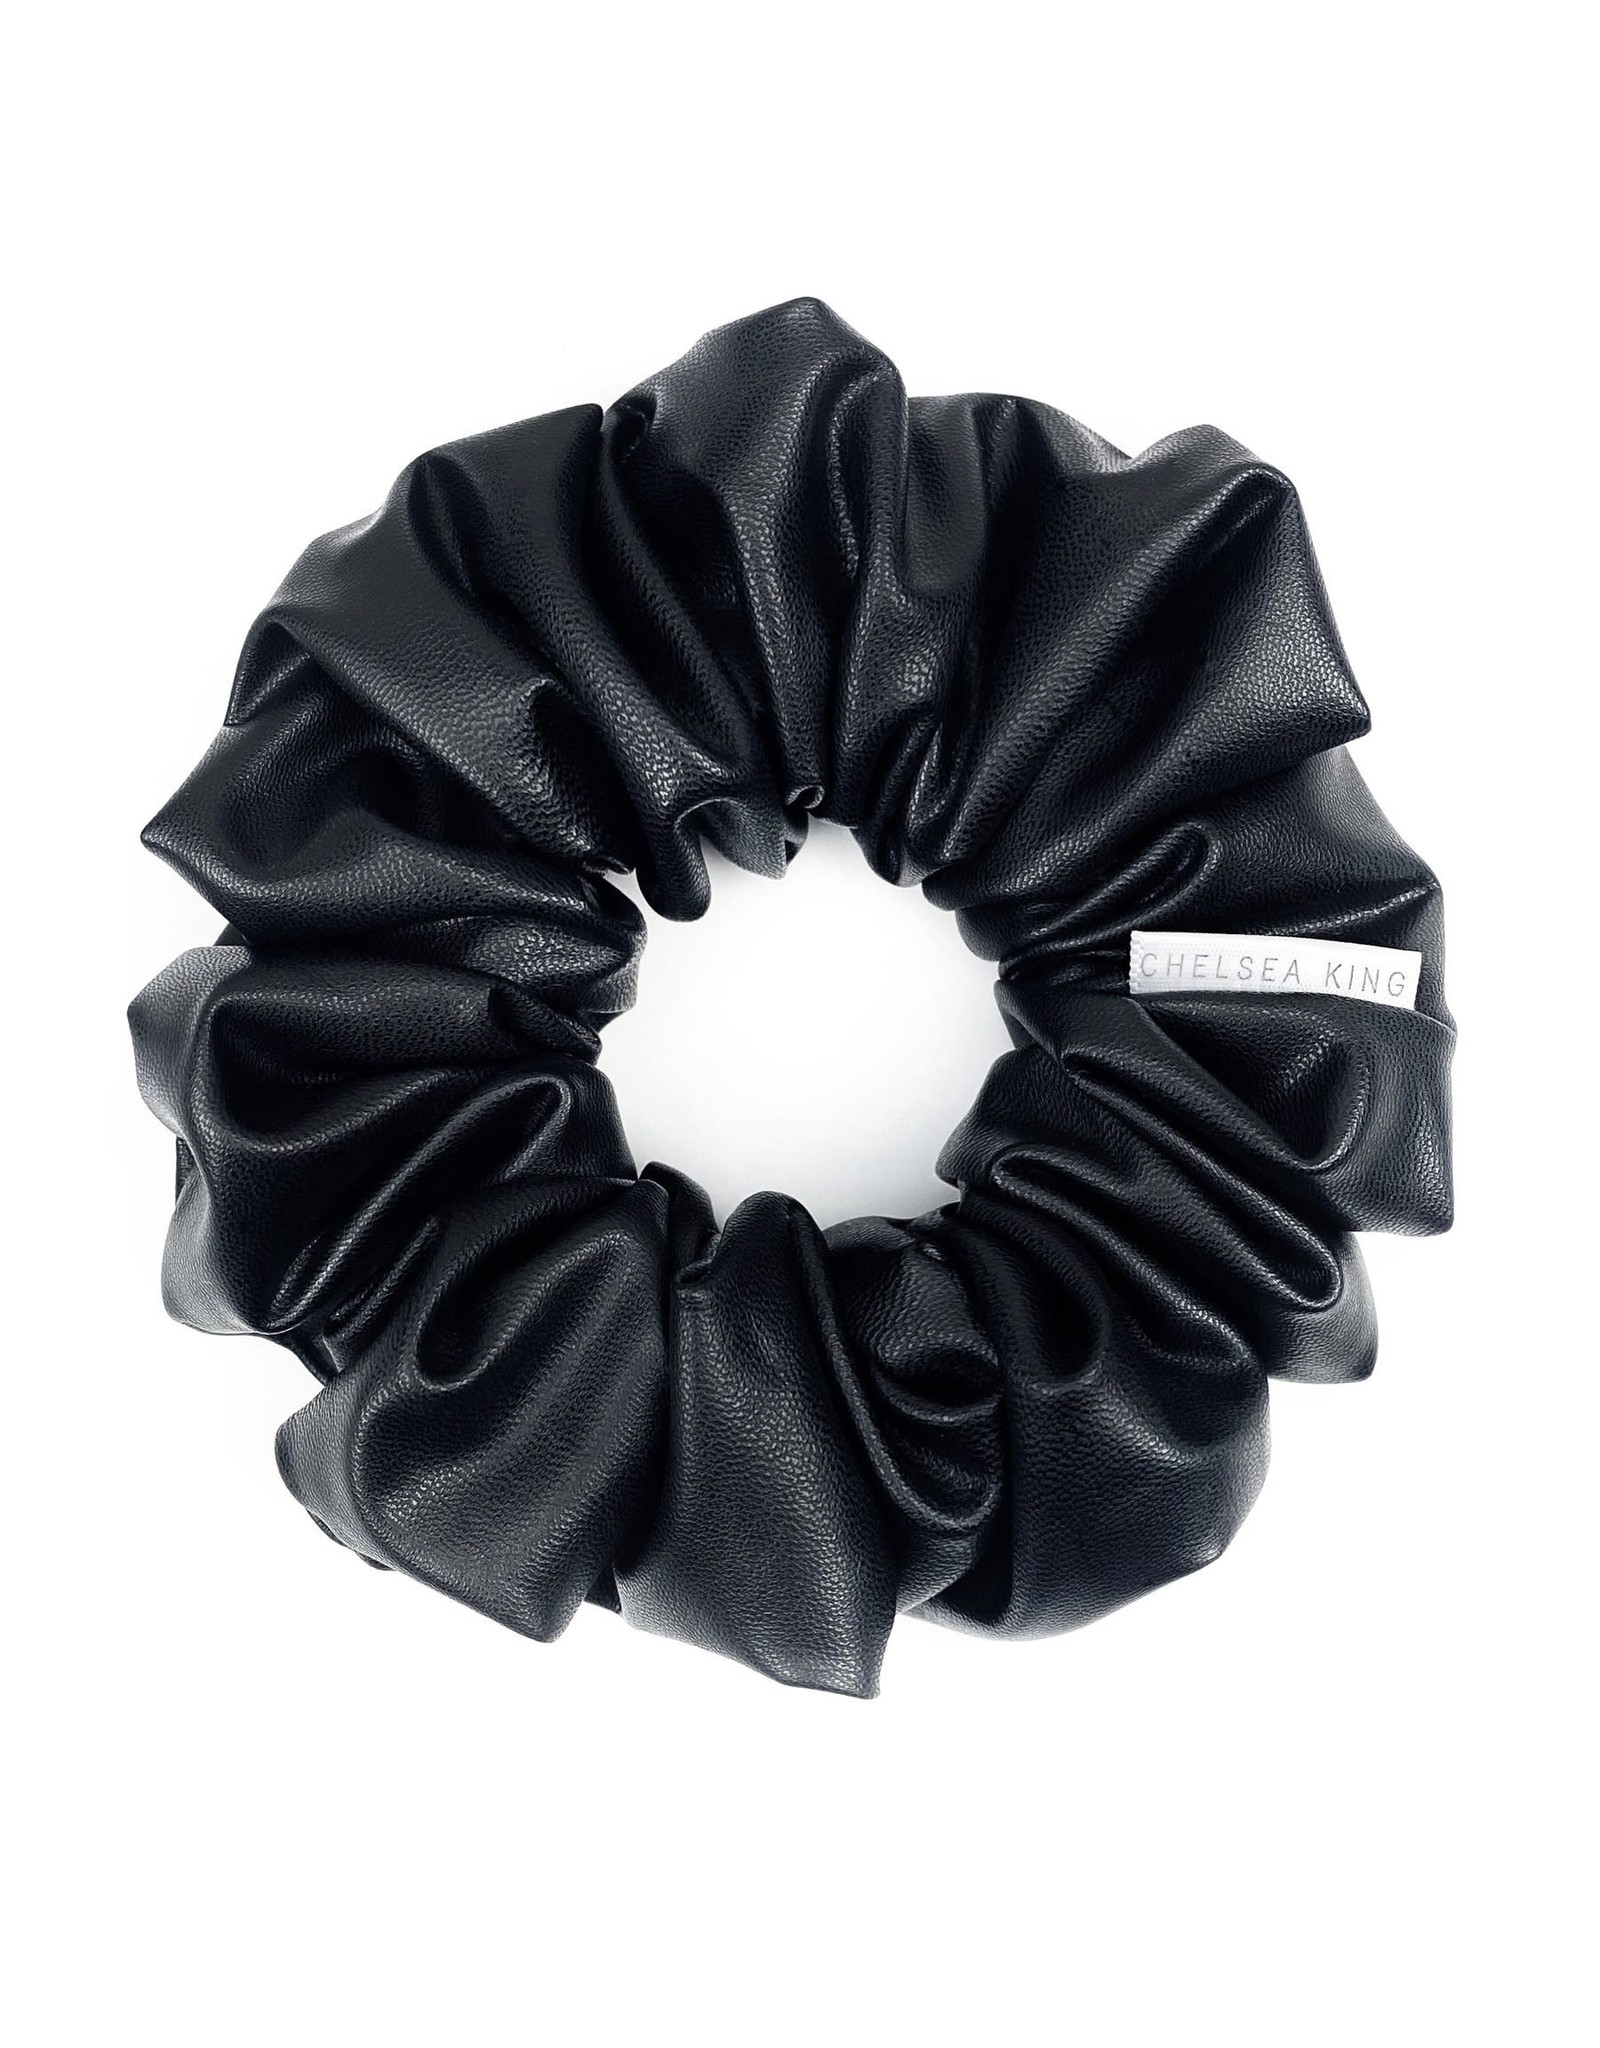 Chelsea King Faux Stretch Leather Scrunchie